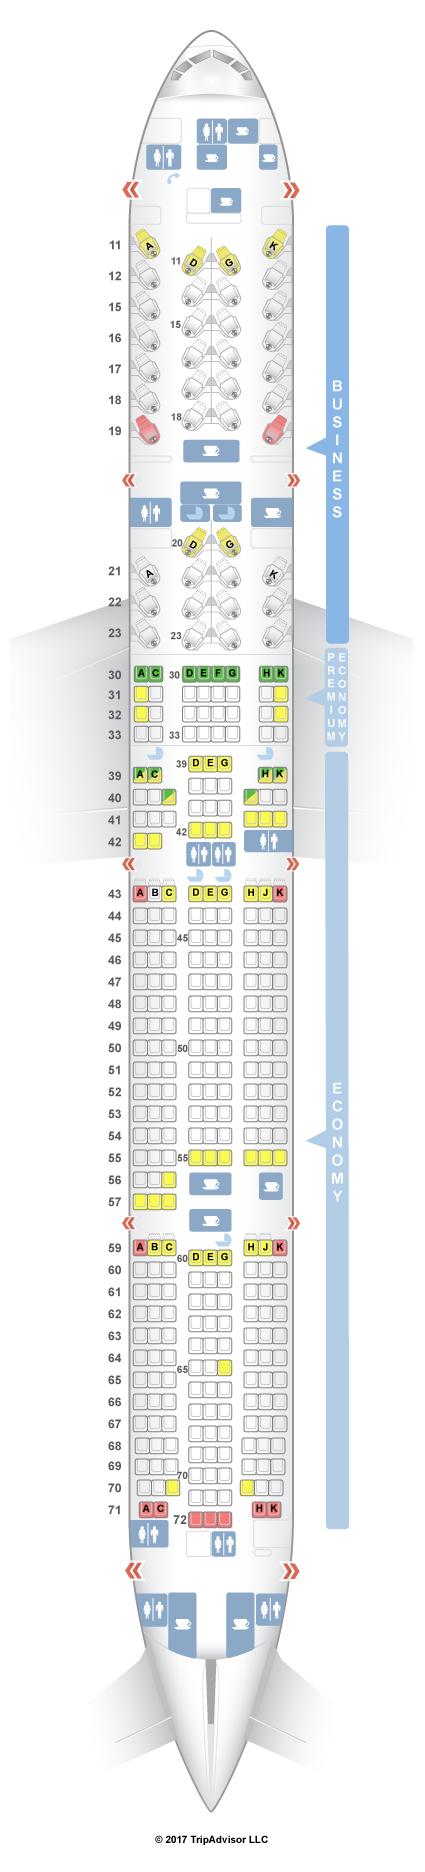 cathay pacific cx837 seat map Seatguru Seat Map Cathay Pacific Seatguru cathay pacific cx837 seat map